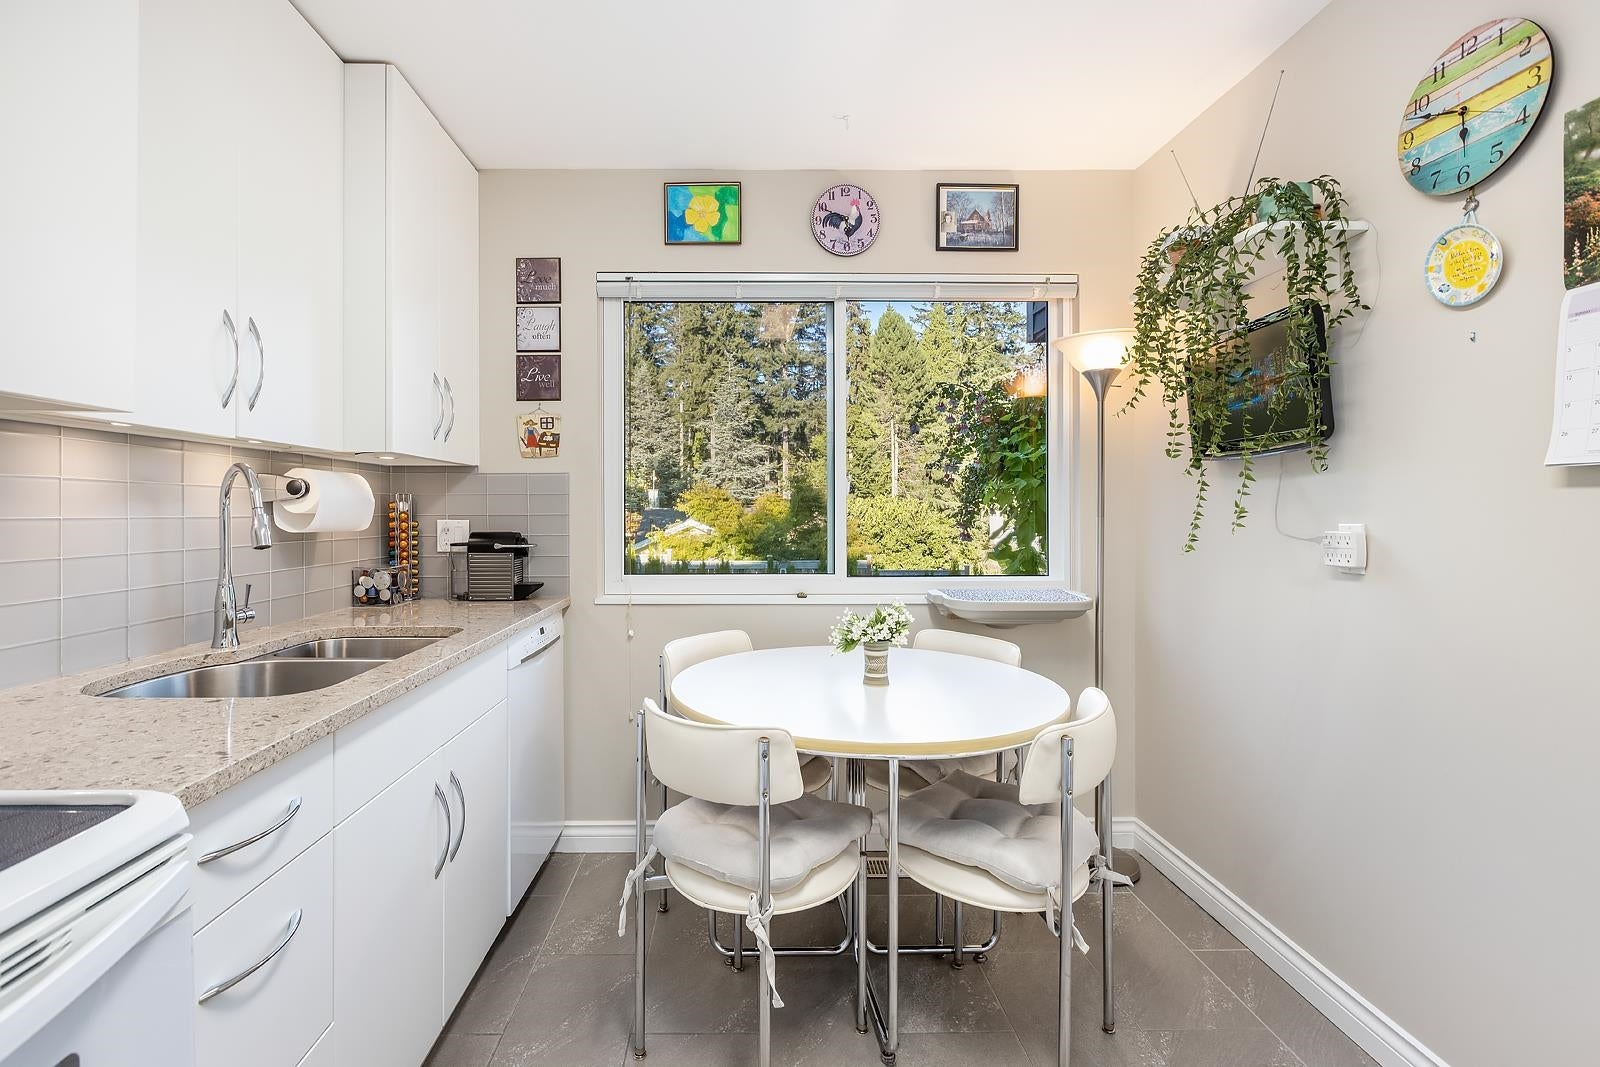 4763 HOSKINS ROAD - Lynn Valley Townhouse for sale, 3 Bedrooms (R2617725) - #5